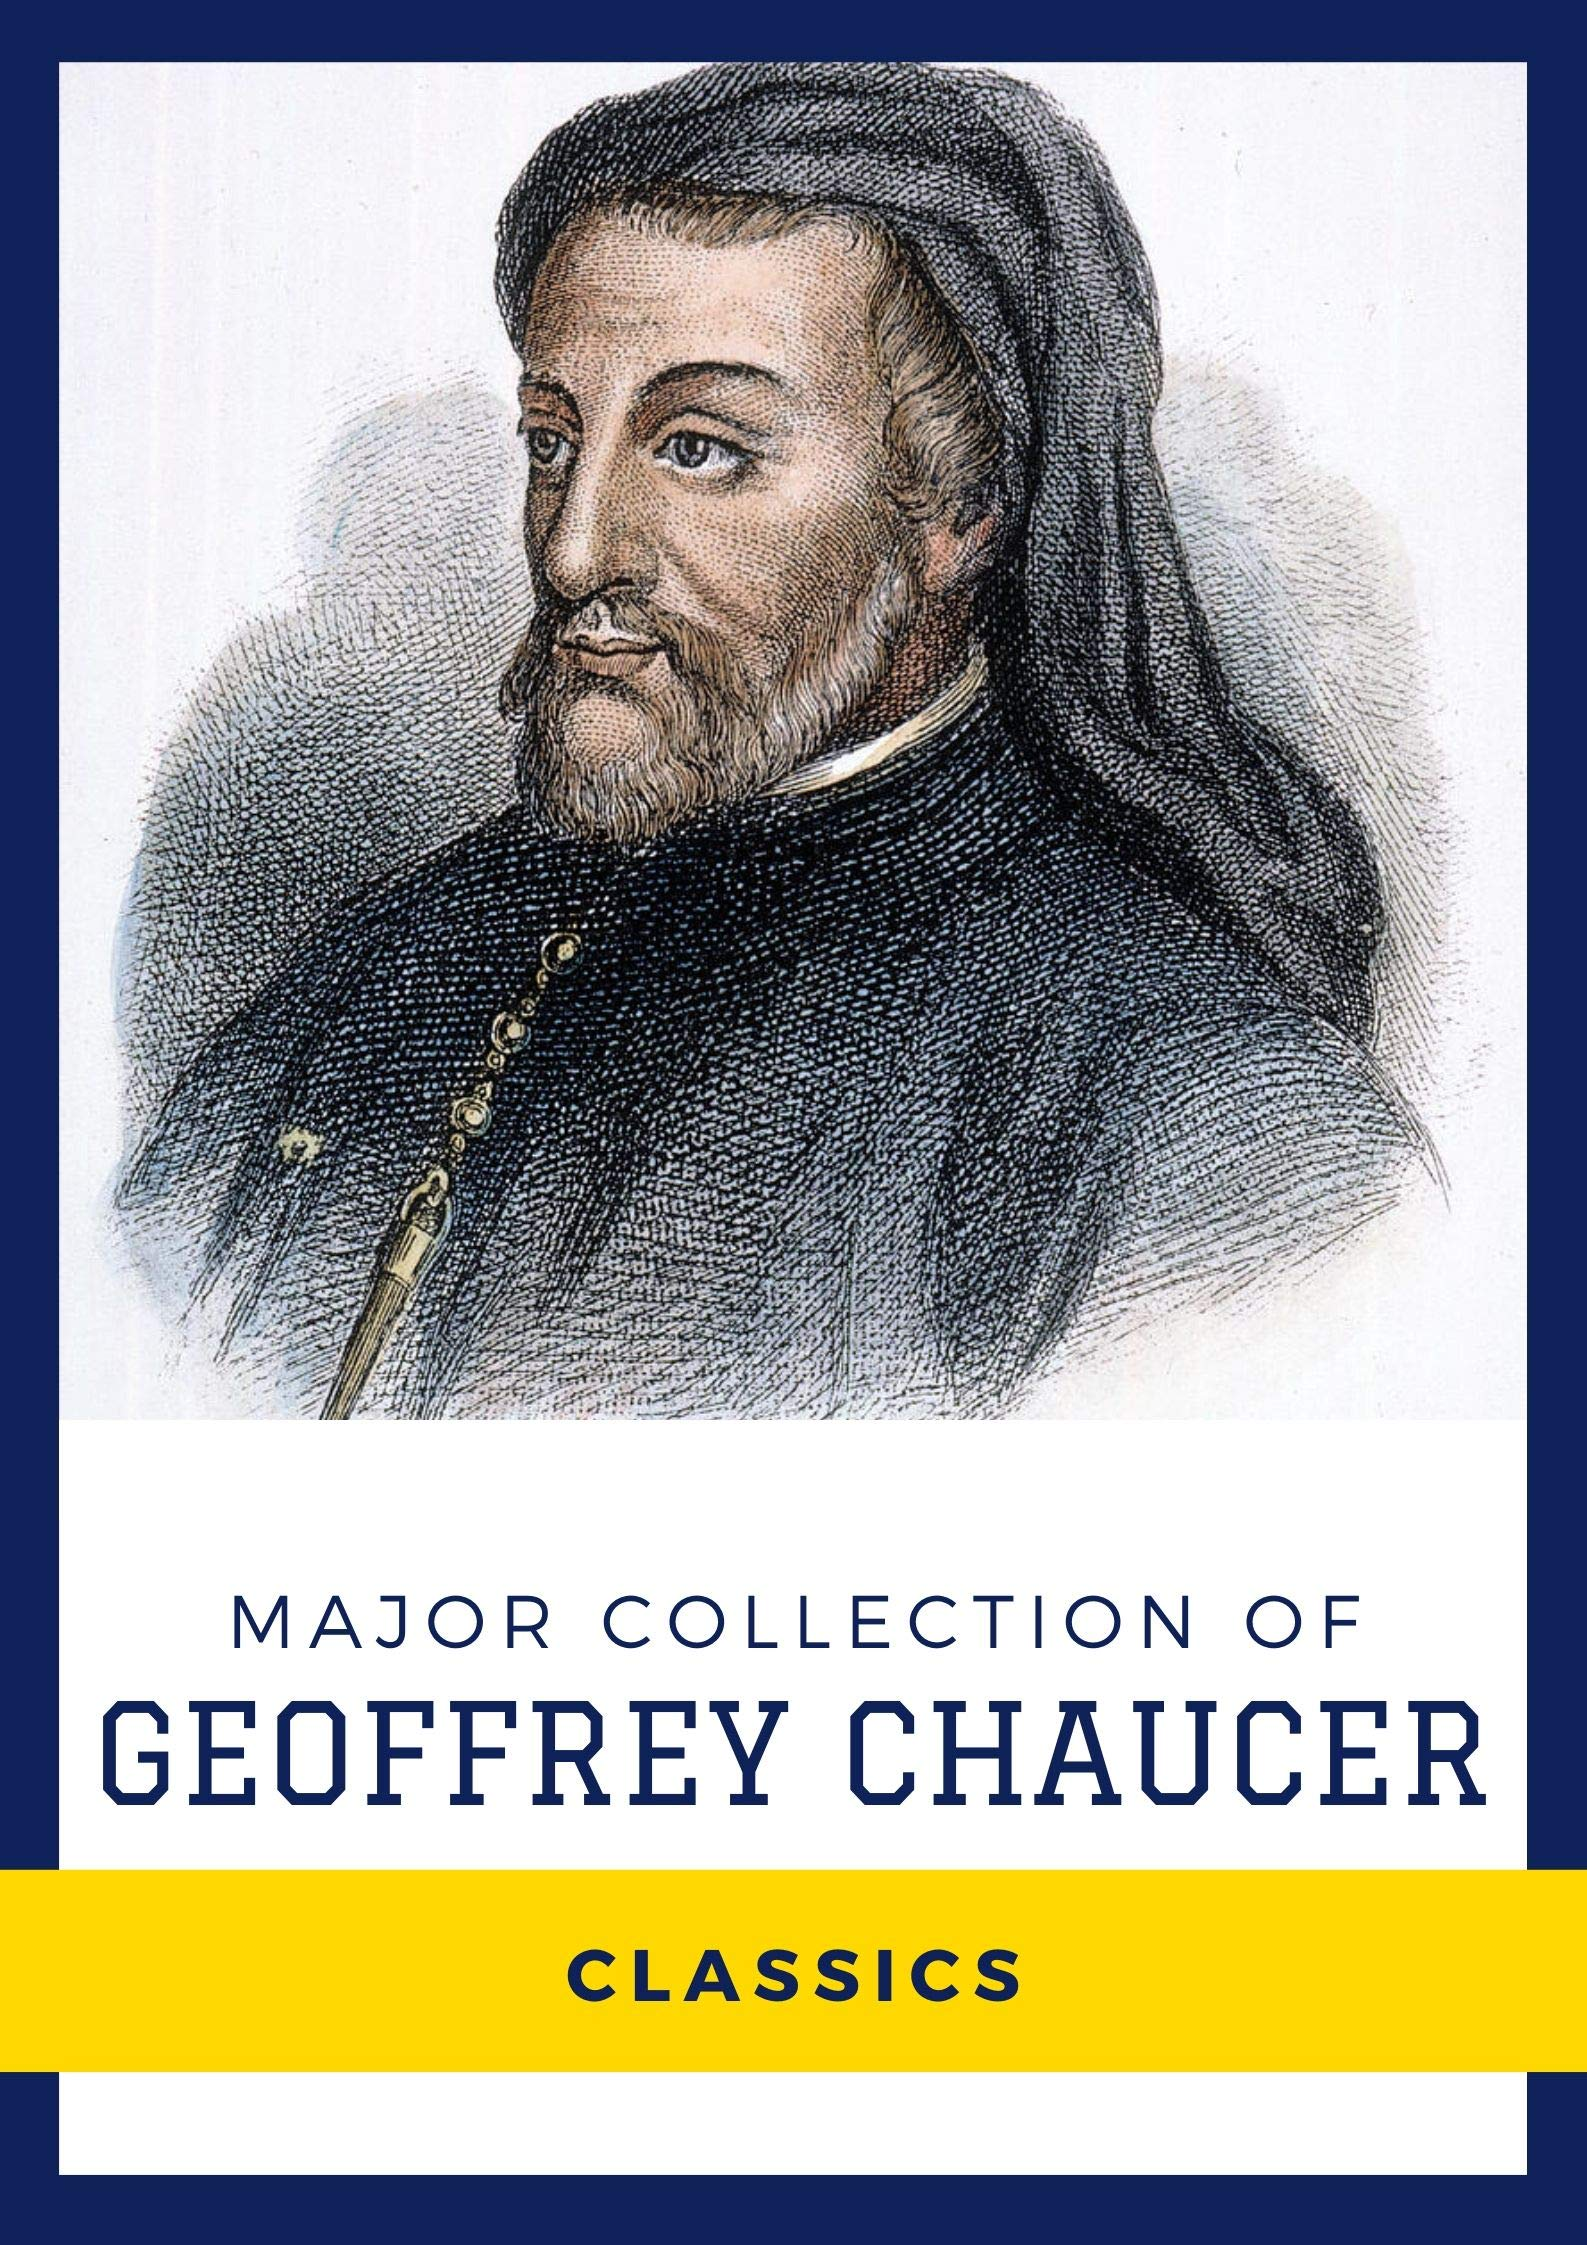 Major Collection of Geoffrey Chaucer (Annotated): Collection Includes The Canterbury Tales and Other Poems, and Troilus and Criseyde